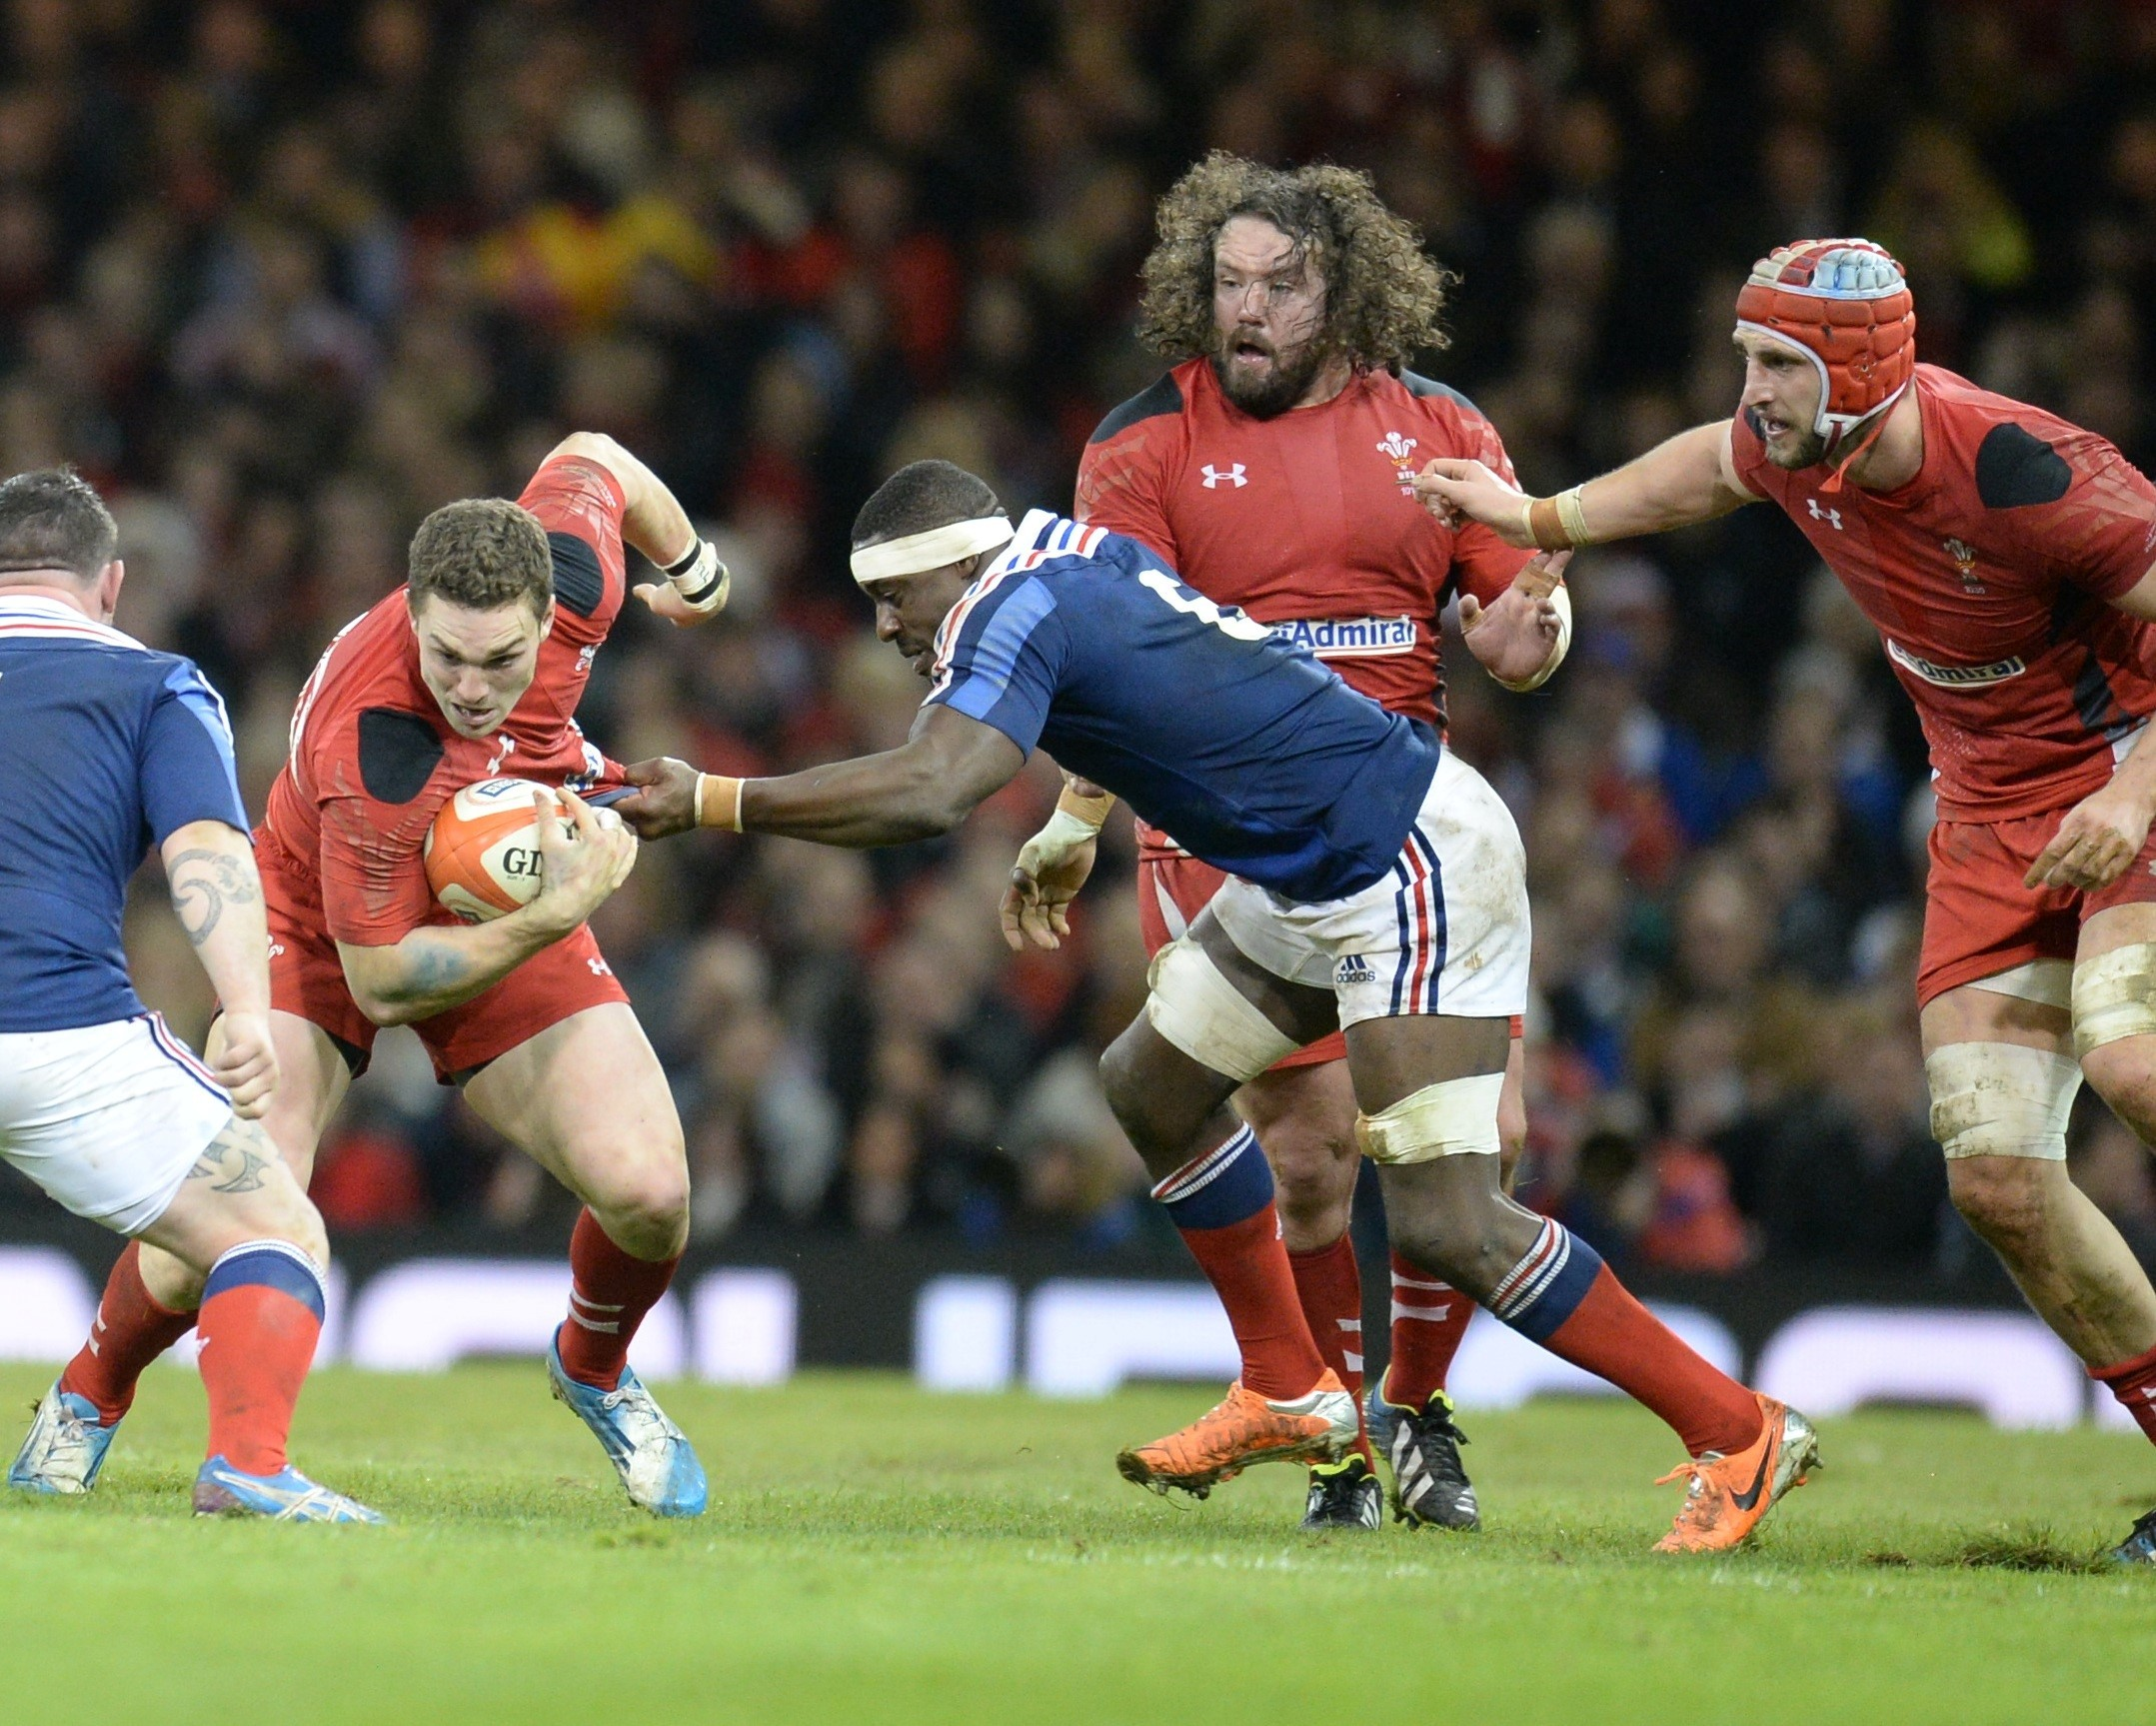 BIG WIN: Adam Jones, centre, watches on as George North goes for the gap against France